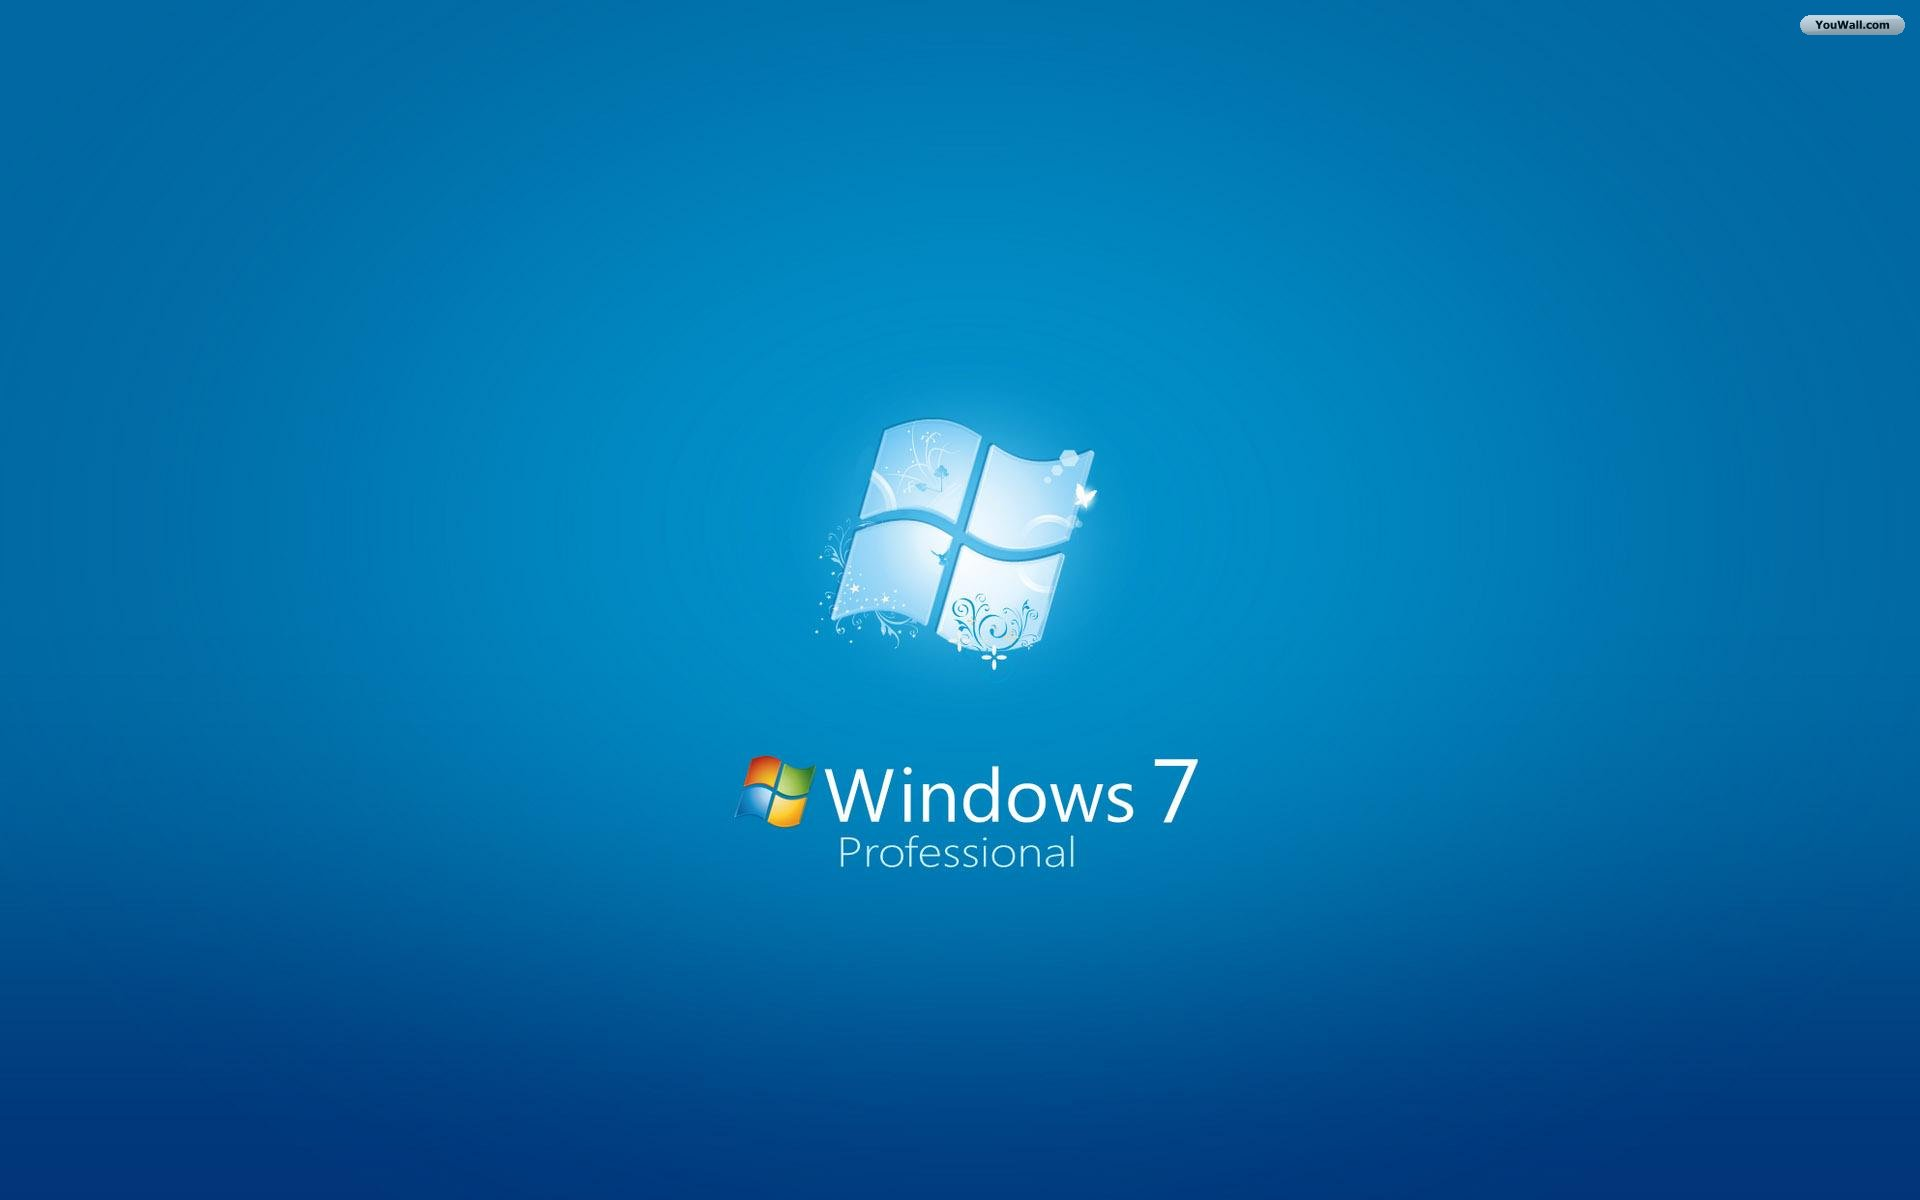 YouWall   Windows 7 Wallpaper   wallpaperwallpapersfree wallpaper 1920x1200